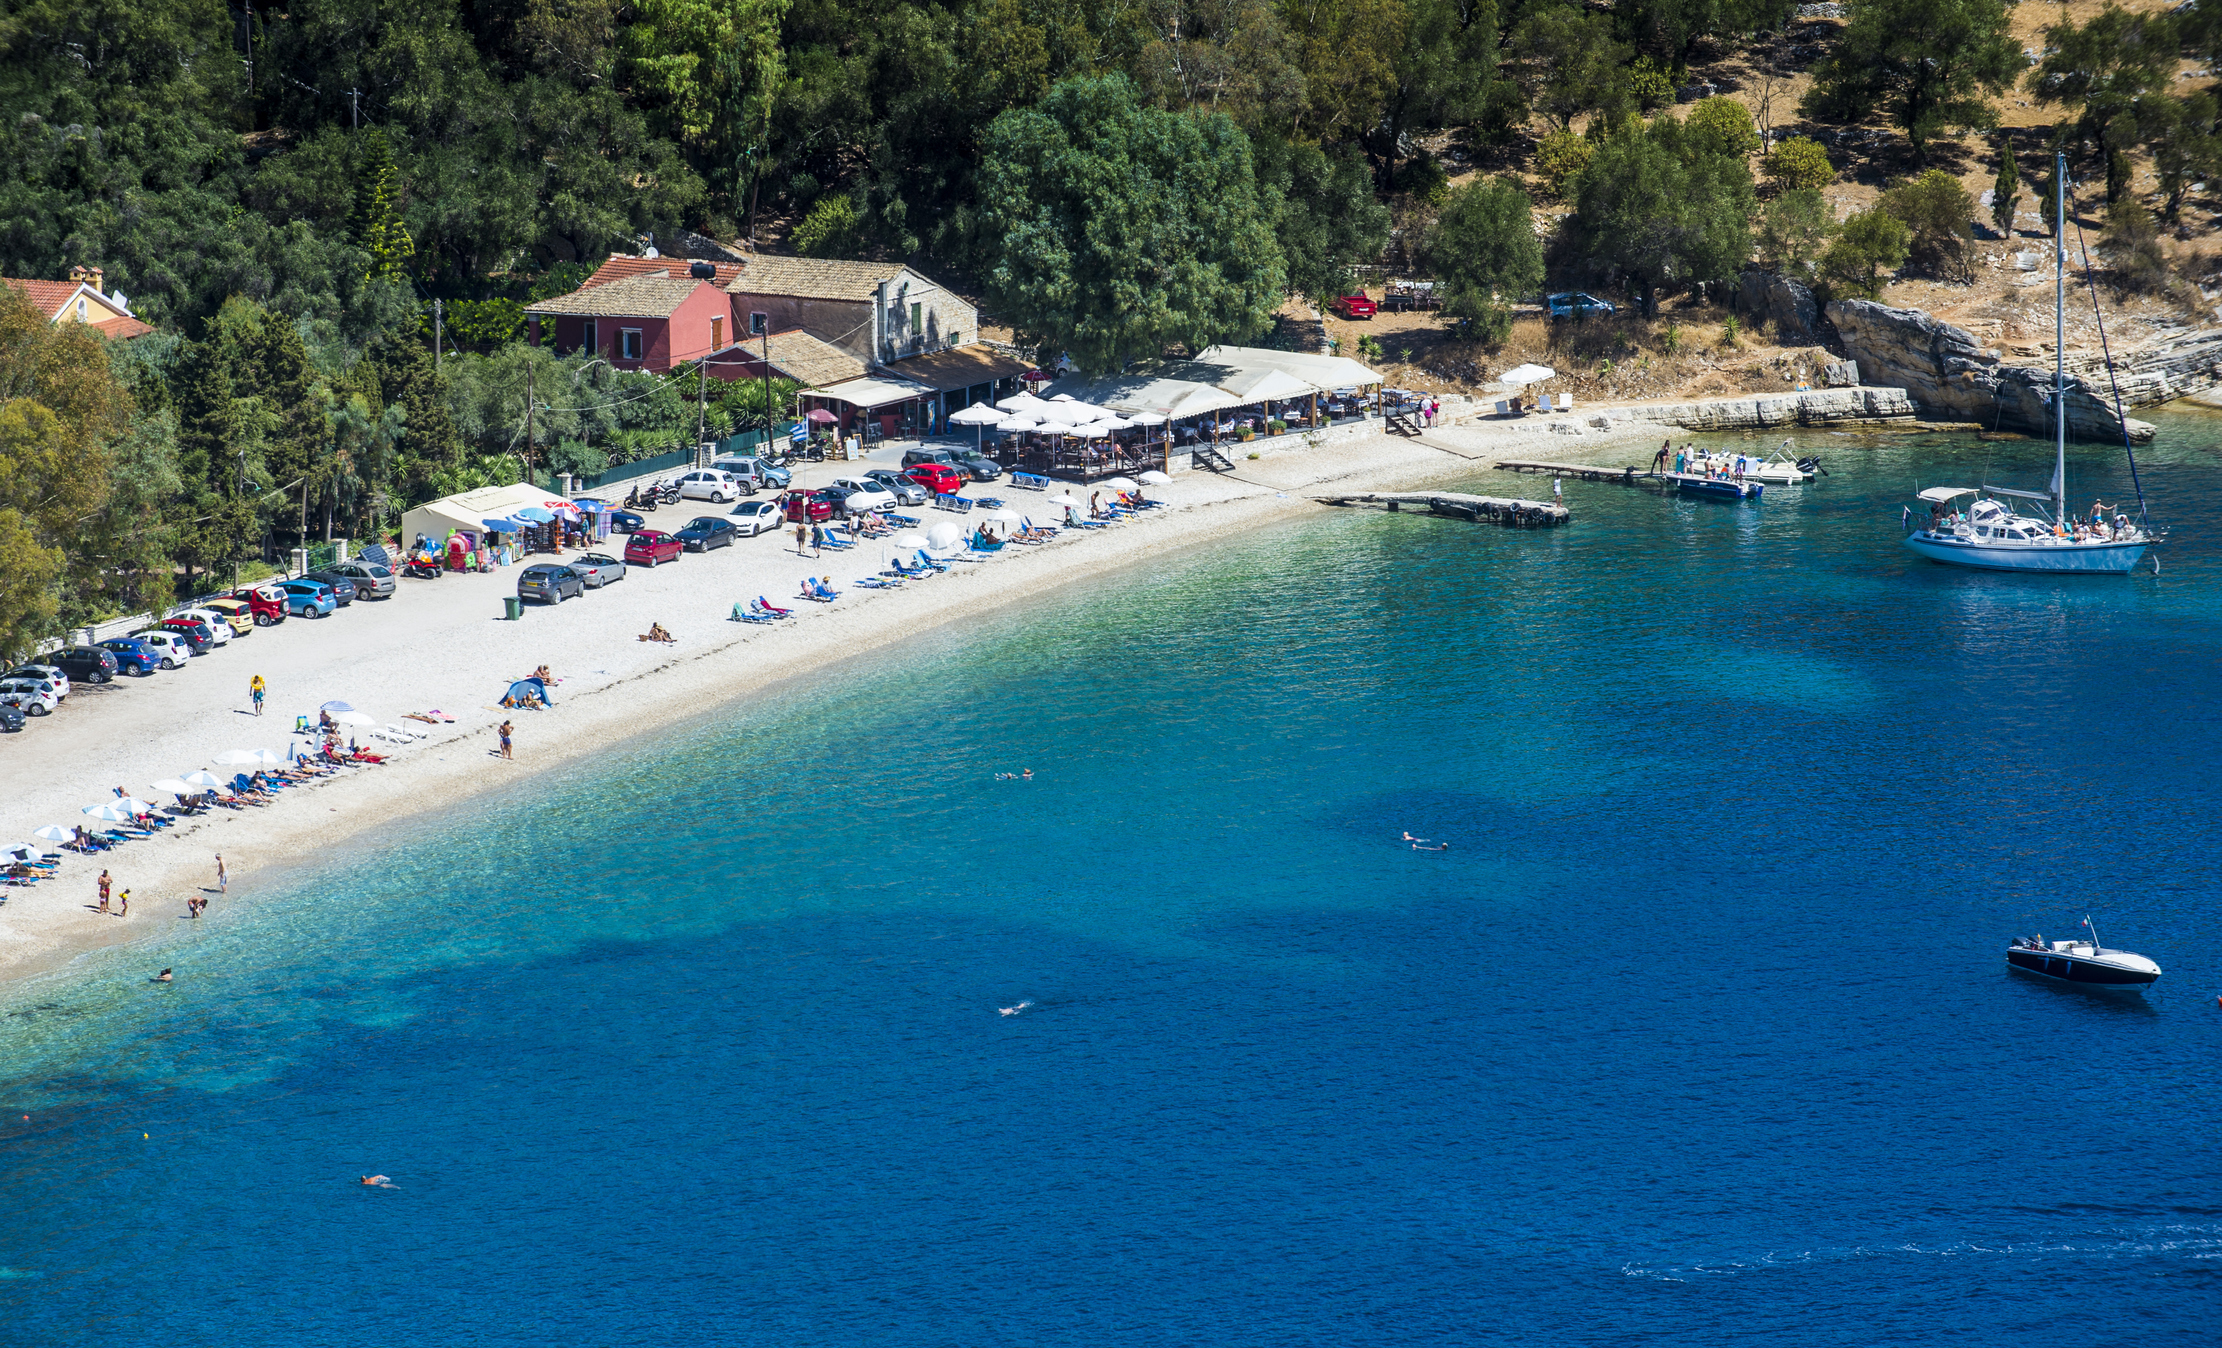 You can fly to the Greek island of Corfu for less than a tenner, and not have to quarantine